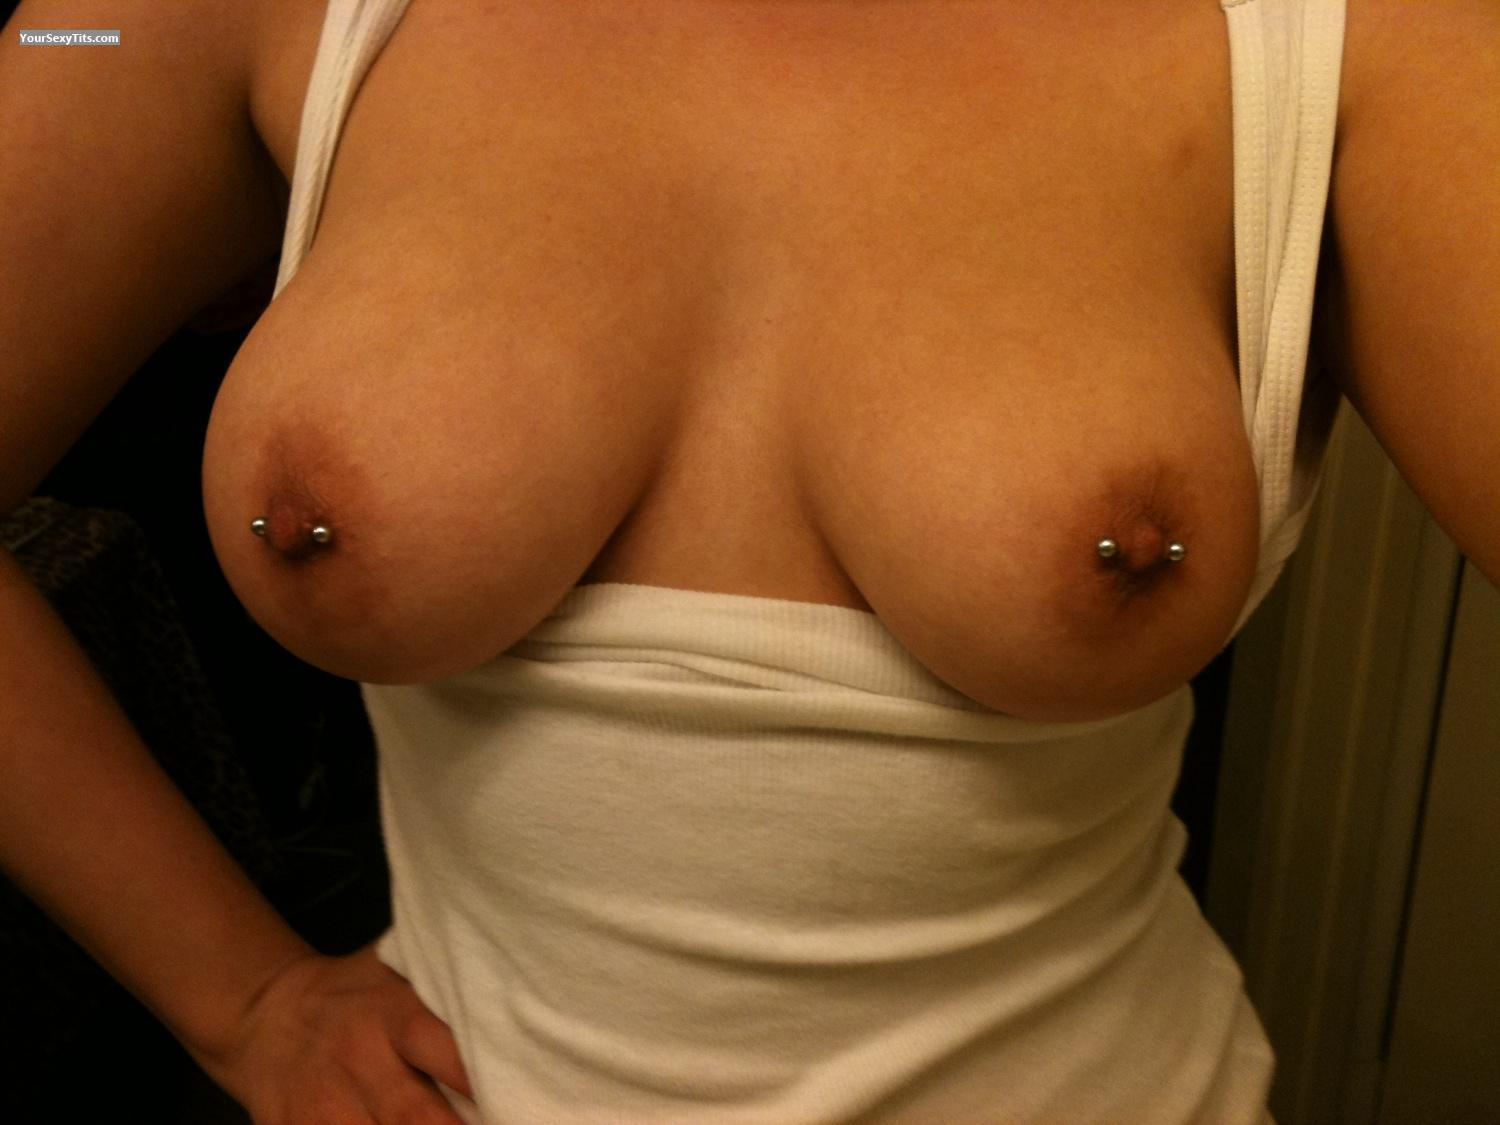 Tit Flash: My Big Tits By IPhone (Selfie) - Arties Girl from United StatesPierced Nipples